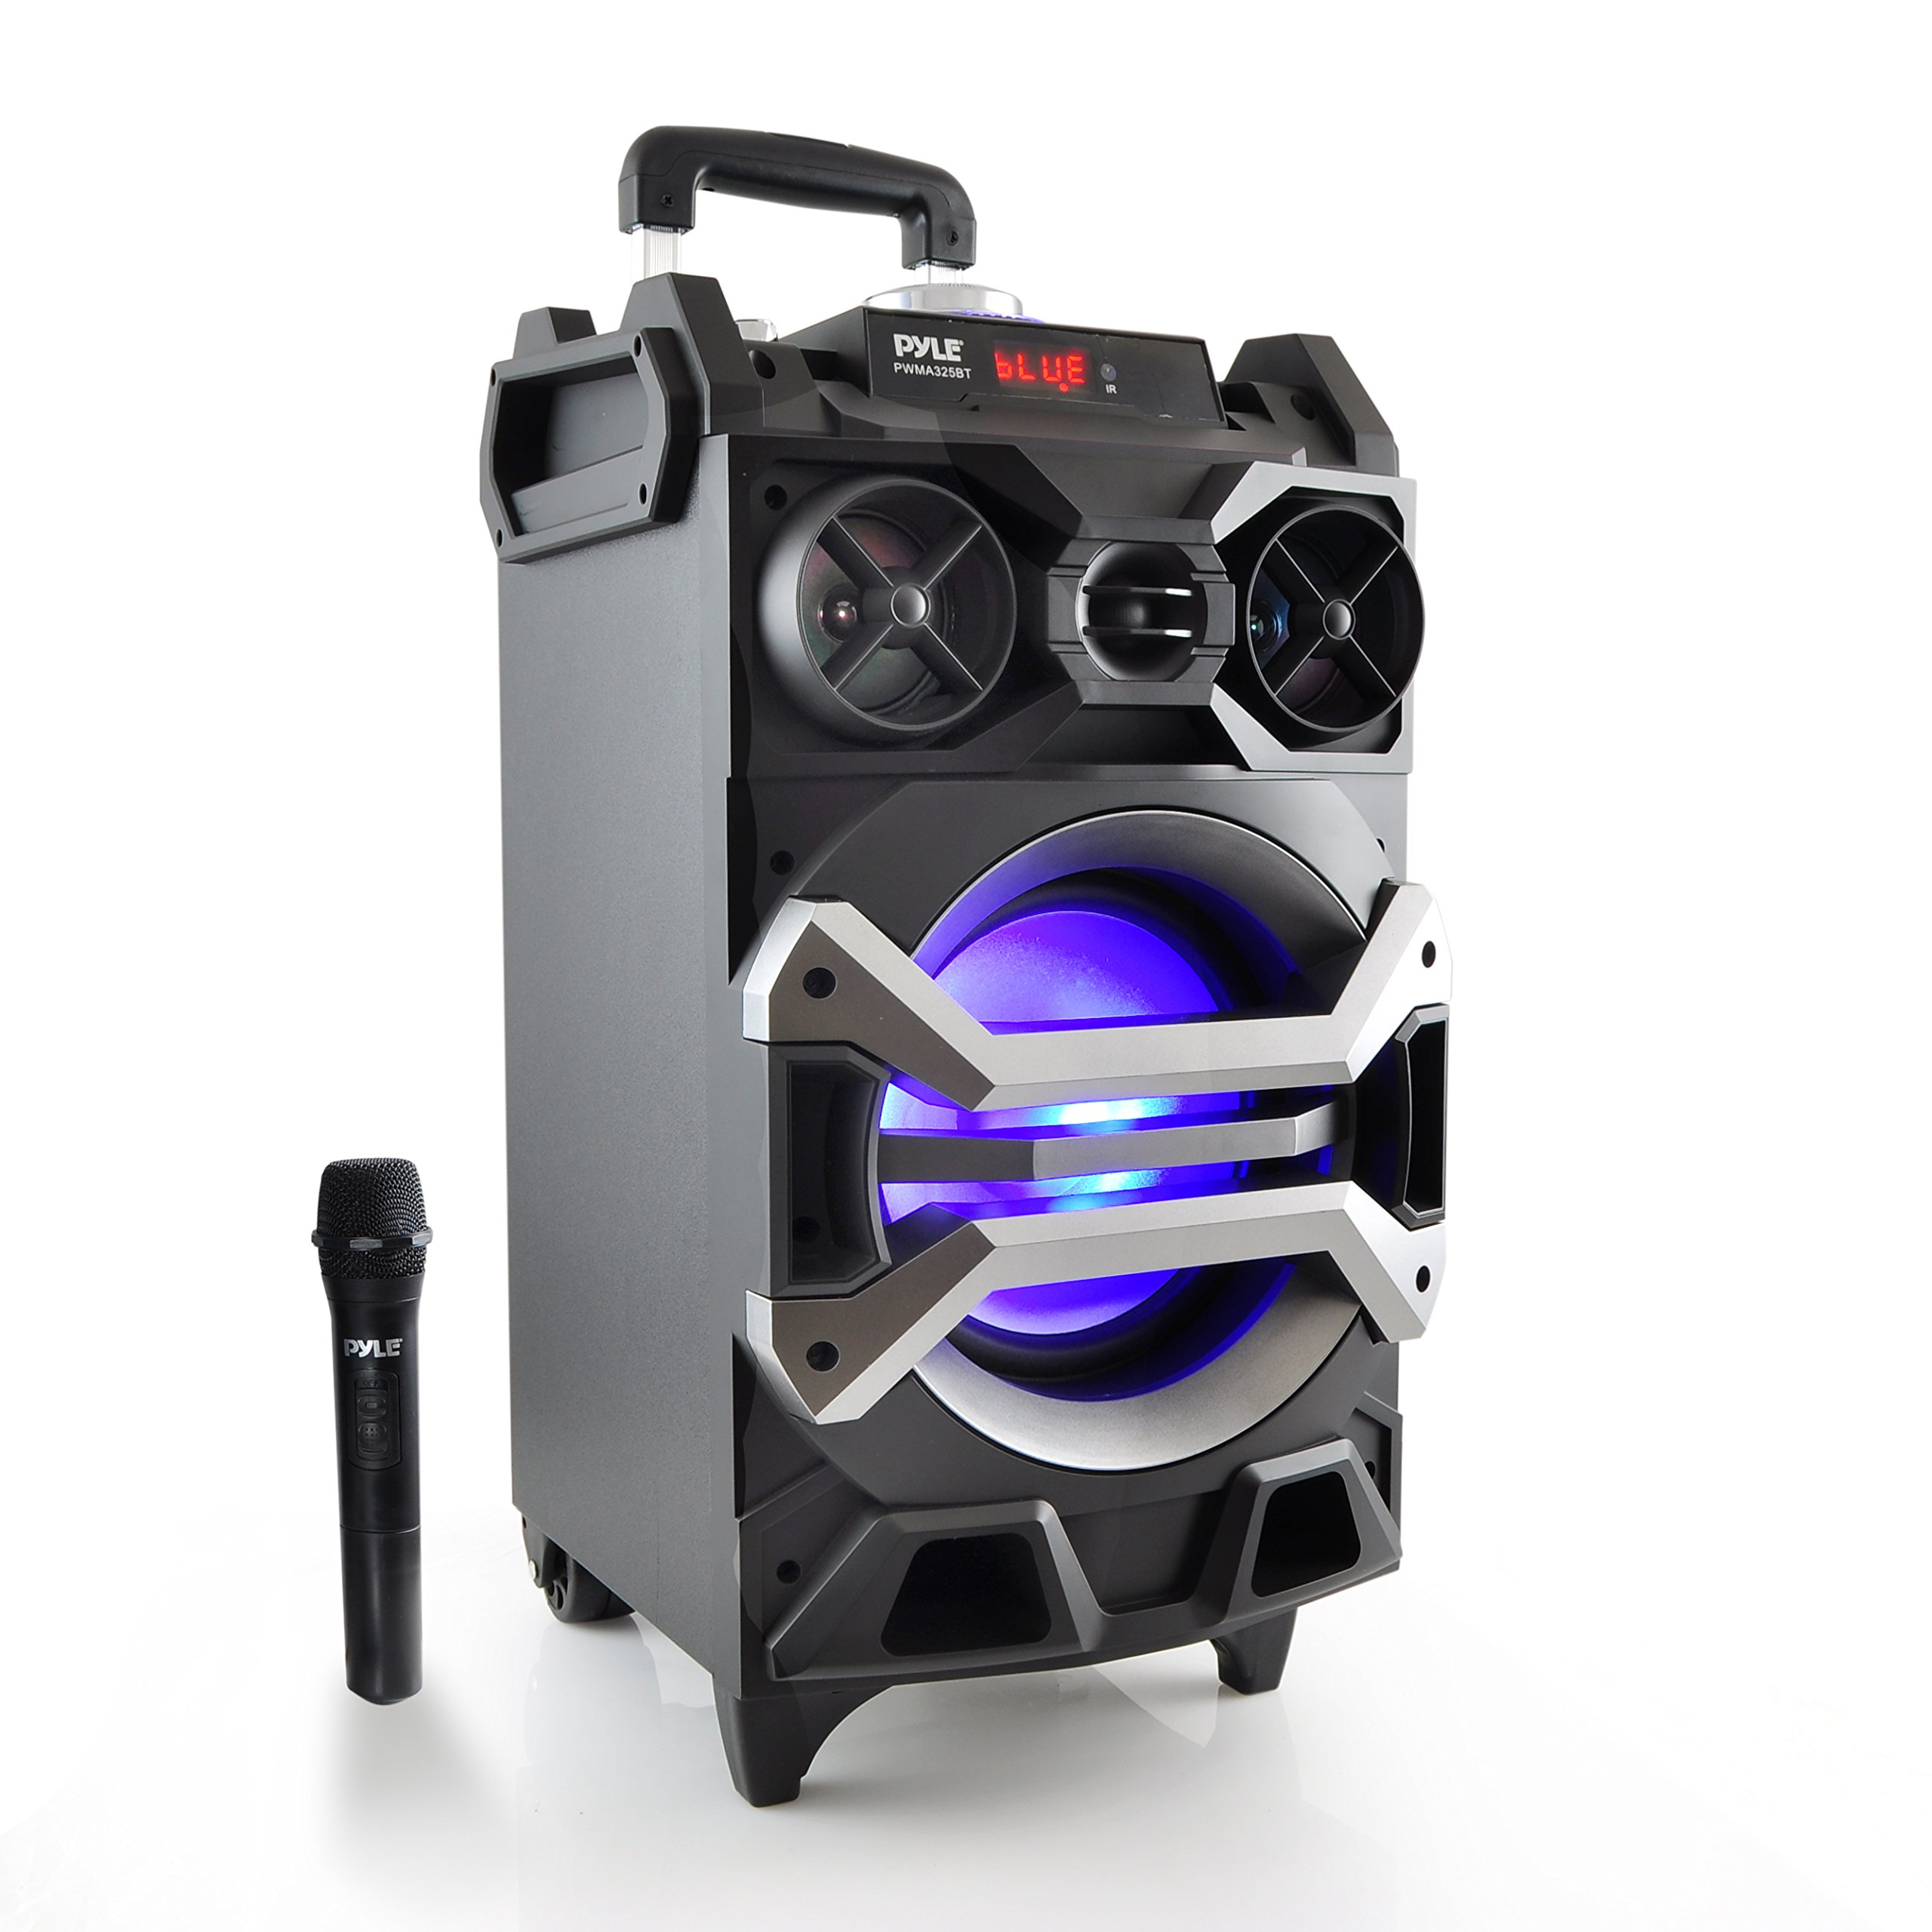 """Pyle 500 Watt Outdoor Portable Bluetooth Karaoke Speaker System - PA Stereo with 8"""" Subwoofer, DJ Lights Rechargeable Battery Wireless Microphone, Recording Ability, MP3/USB/SD/FM Radio - PWMA325BT"""